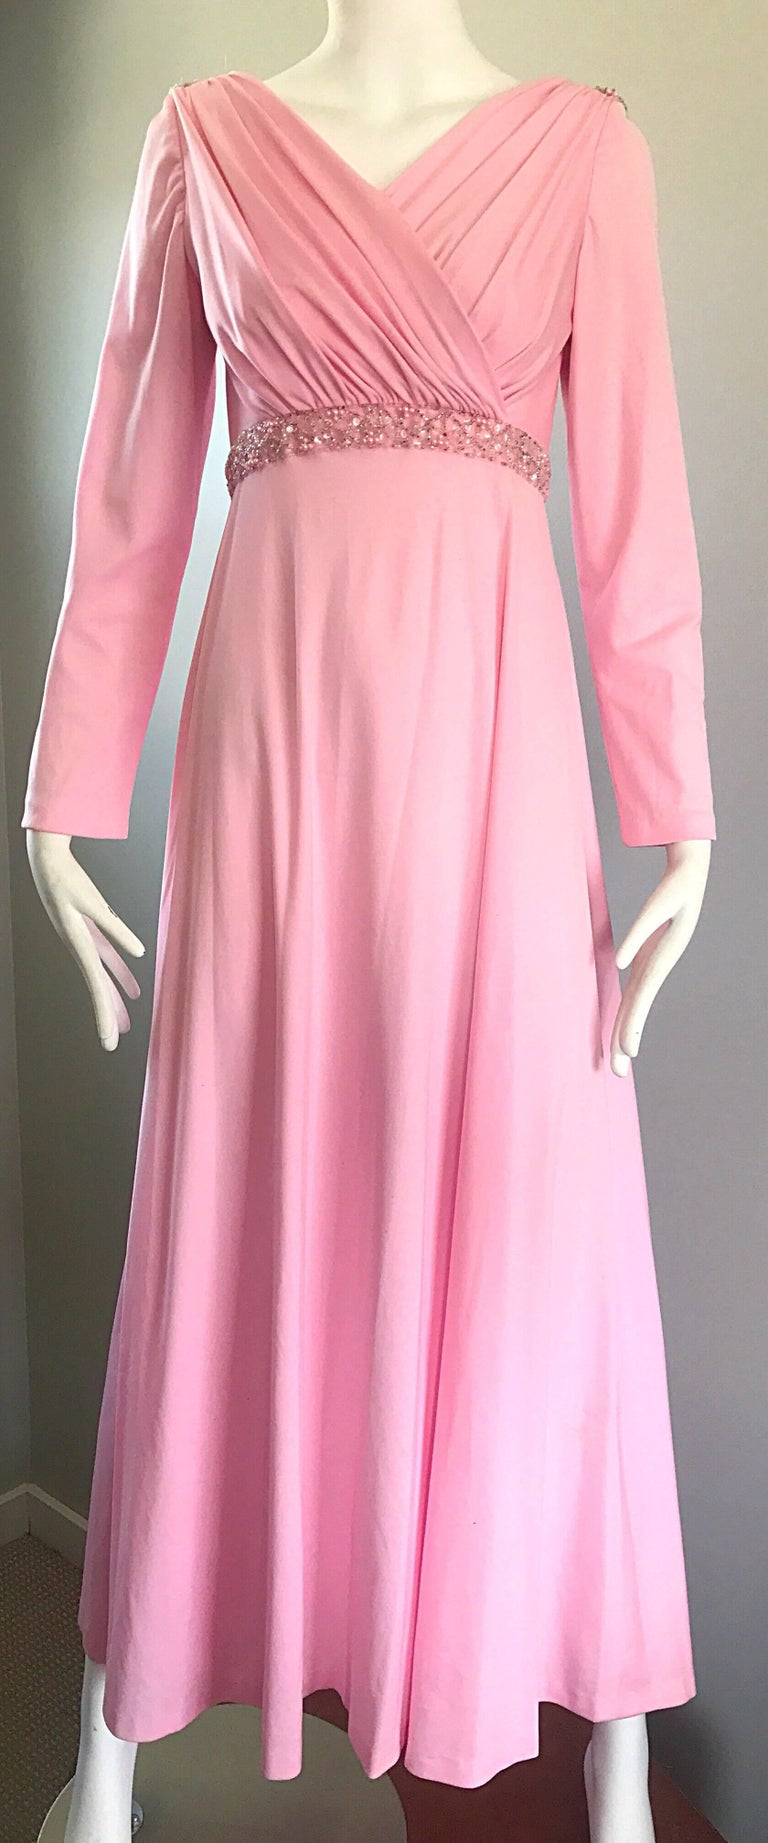 Amazing 1970s Light Pink Grecian Sequined and Beaded Long Sleeve Maxi Dress Gown For Sale 2